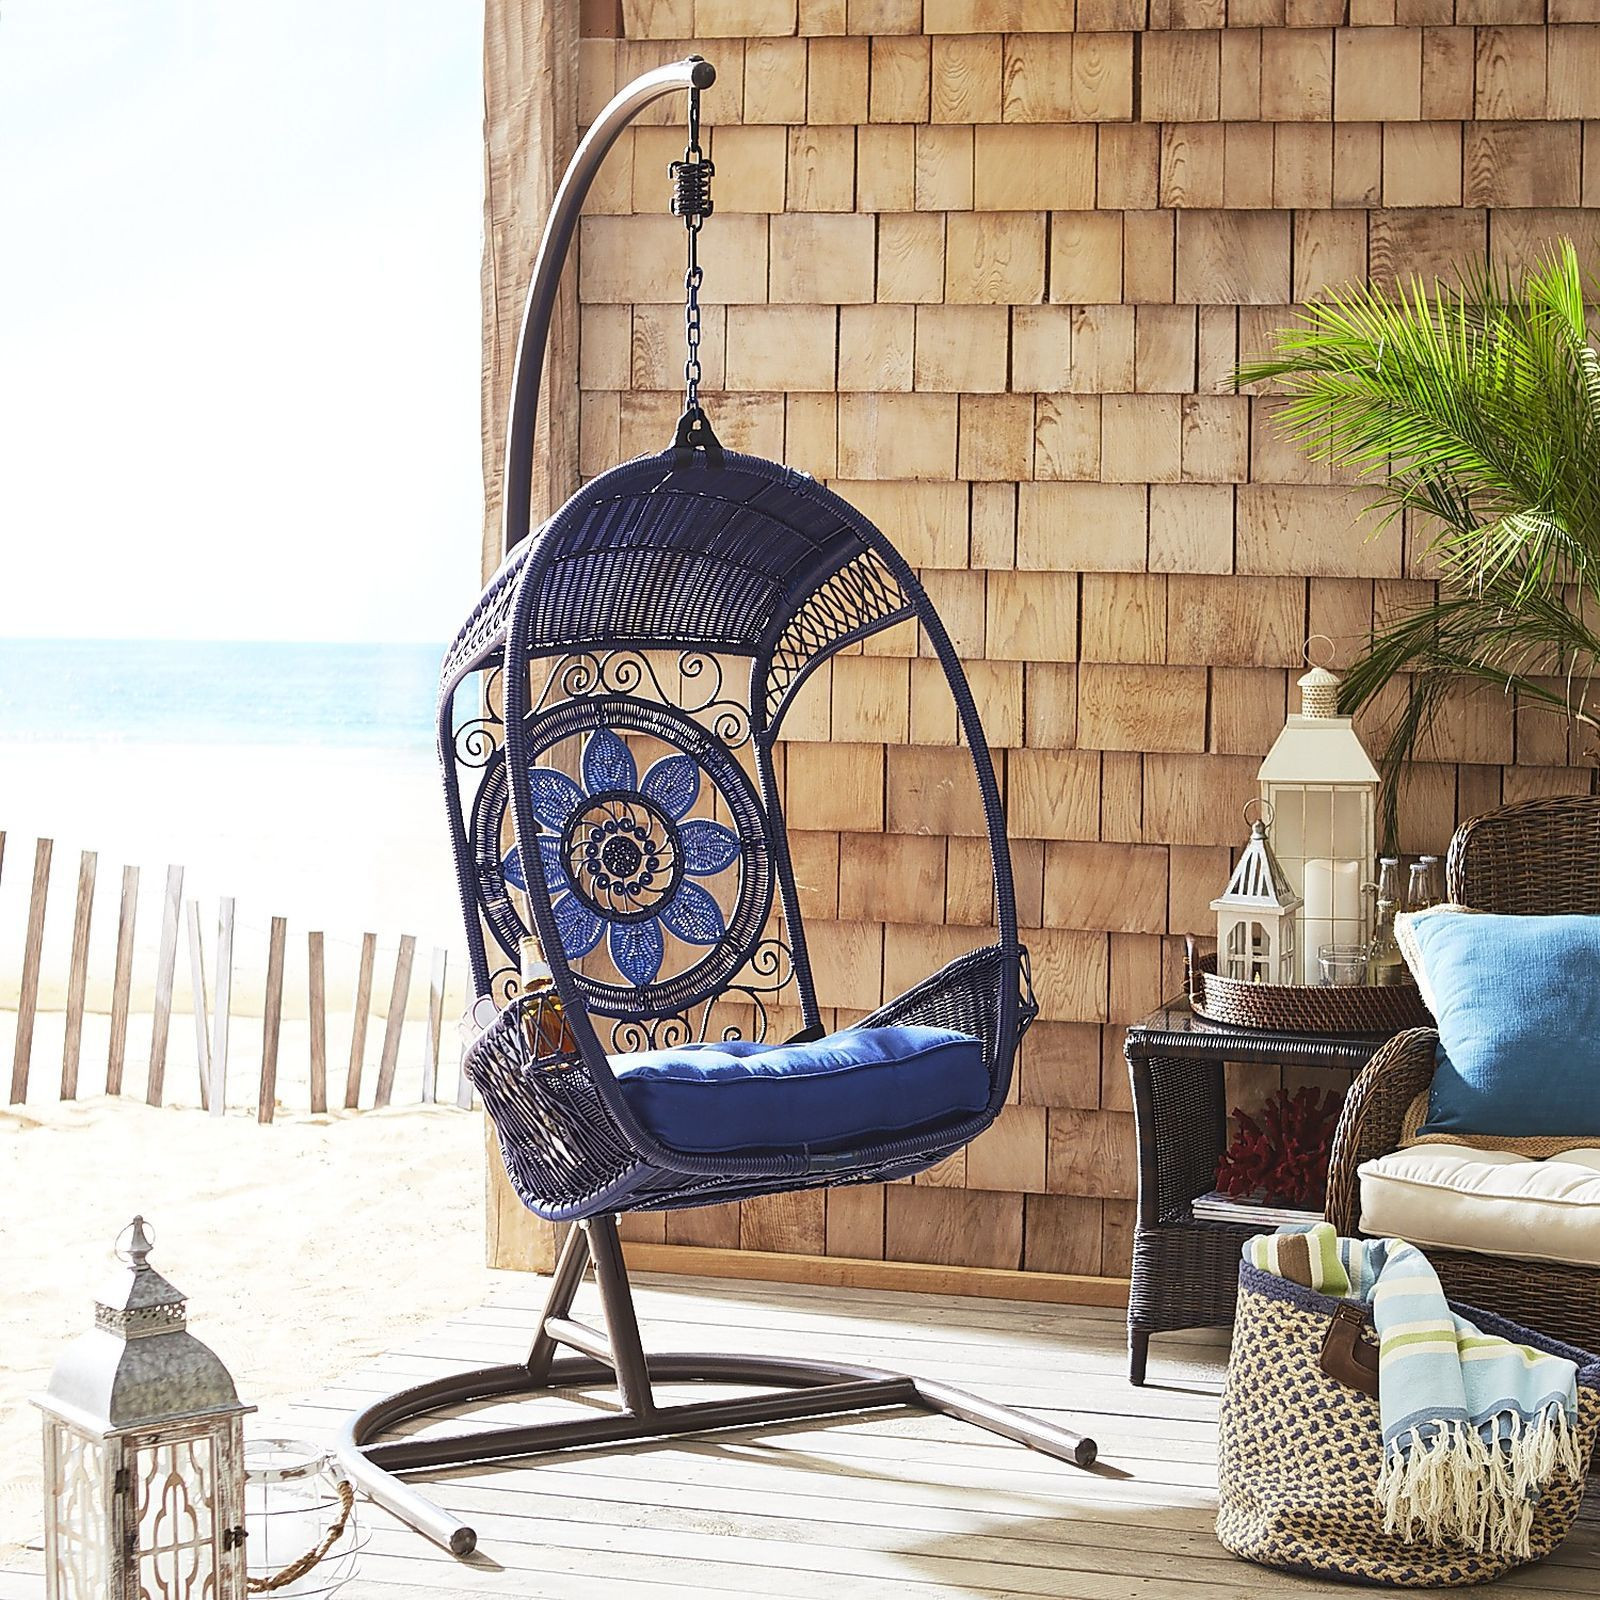 Pier 1 Blue Medallion Swingasan Hanging Chair w/ Stand